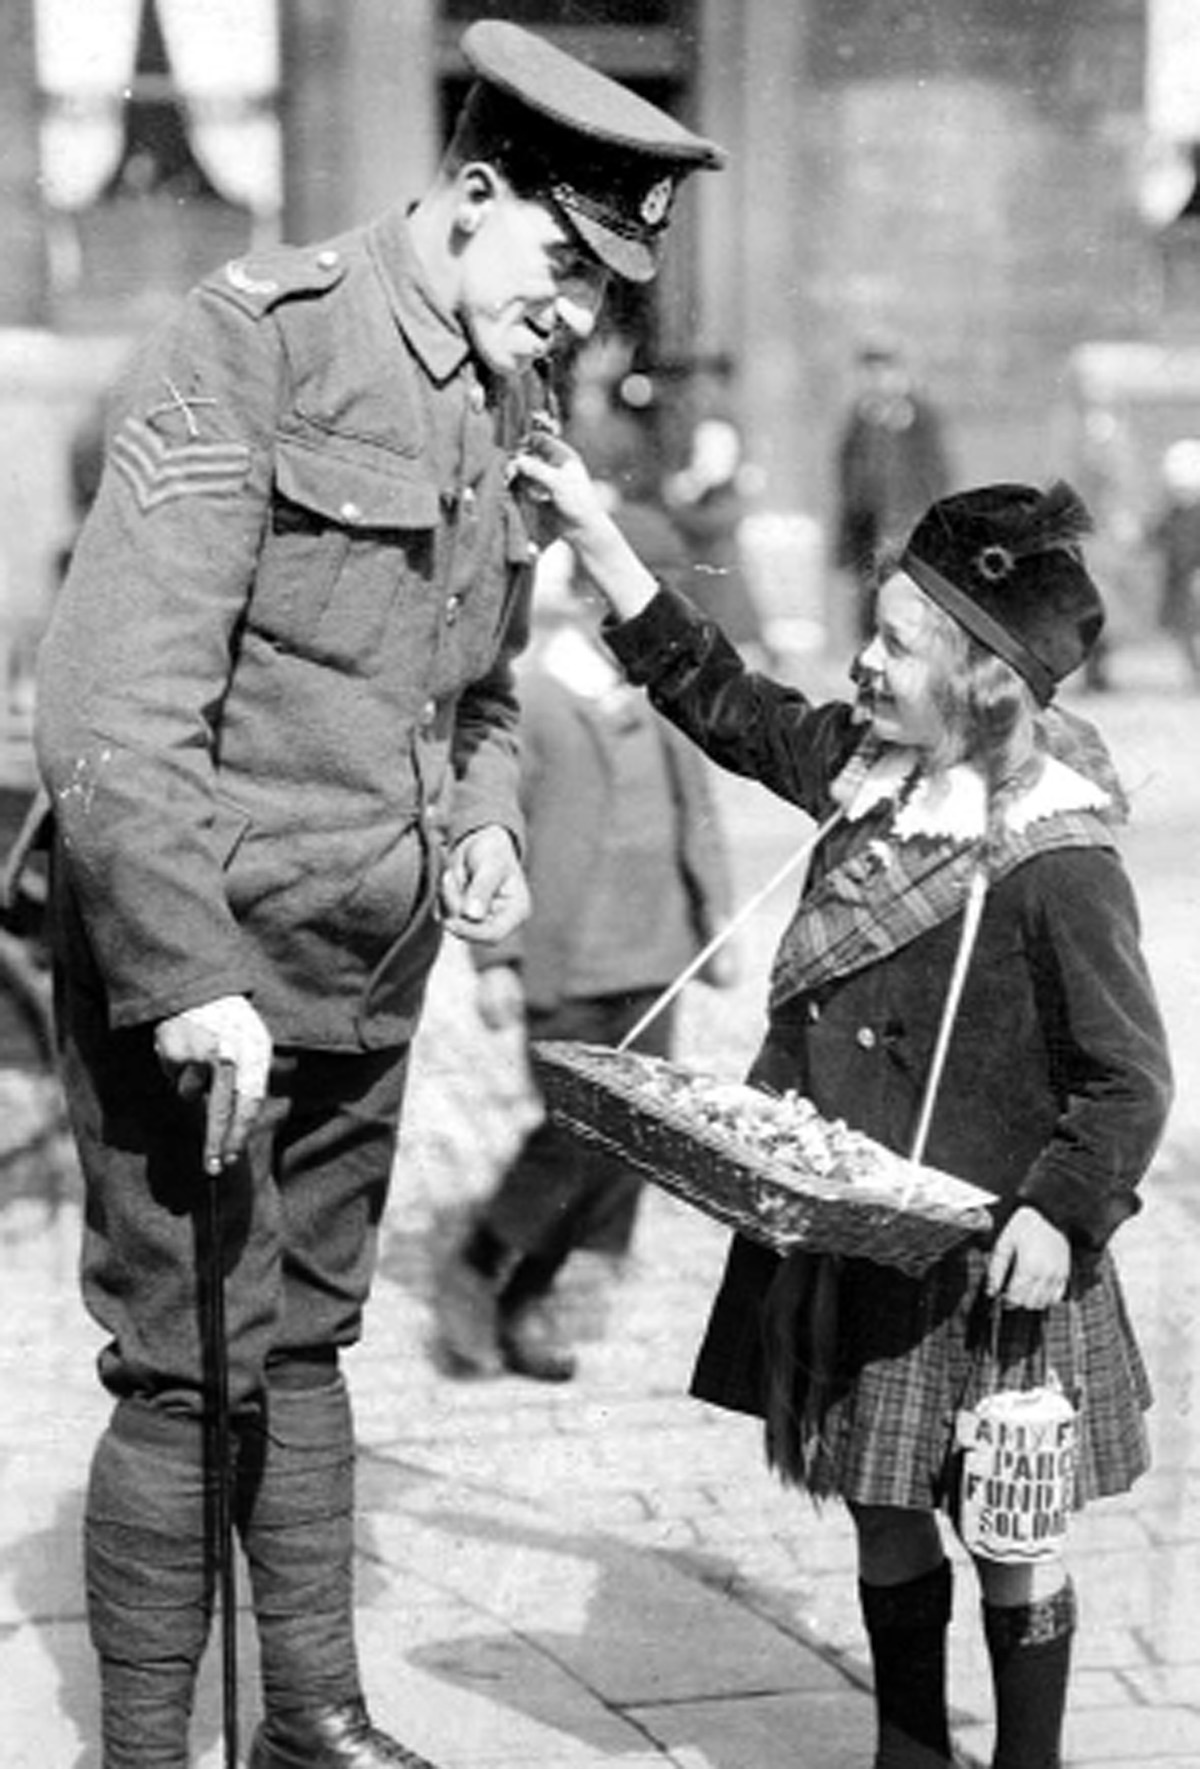 Wartime fundraiser Amy Foster, known as Hieland Lassie, with Sgt Alfred Faraday, in St James Street, Burnley, 1916